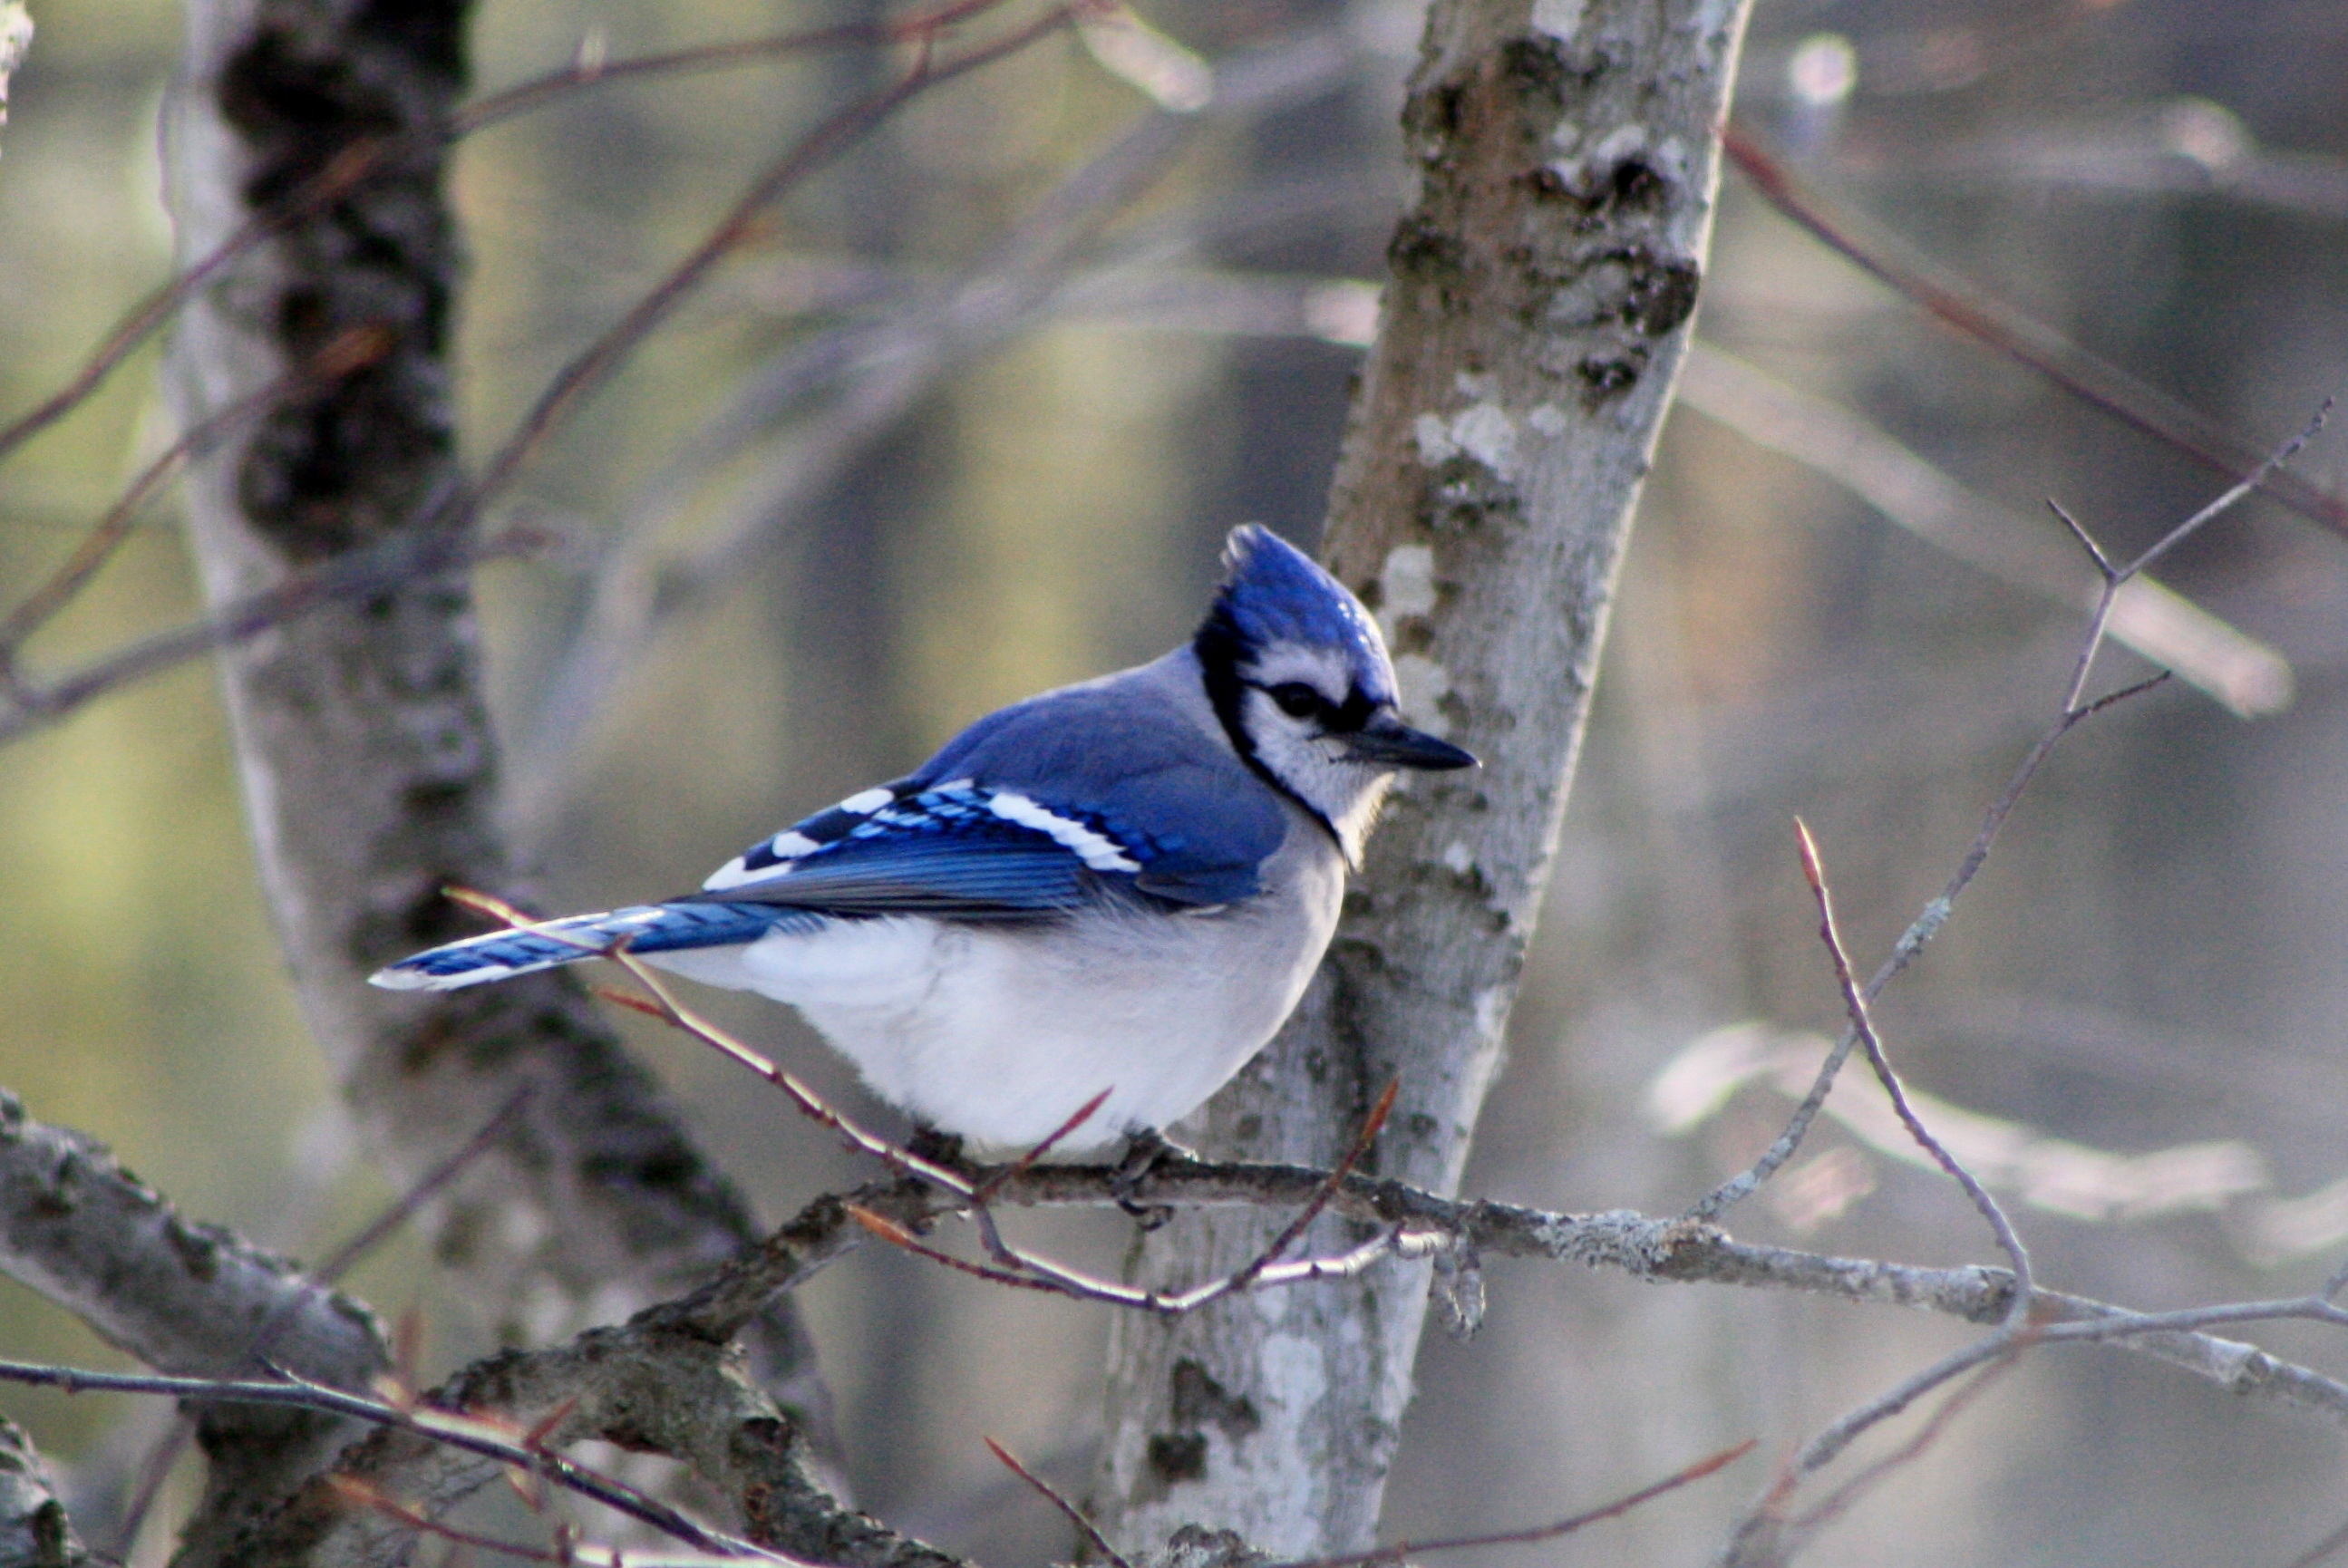 Patience isn't a word normally applied to blue jays, but this one seems content to wait its turn for a meal at the feeder in Bruce Small's yard in Raymond.